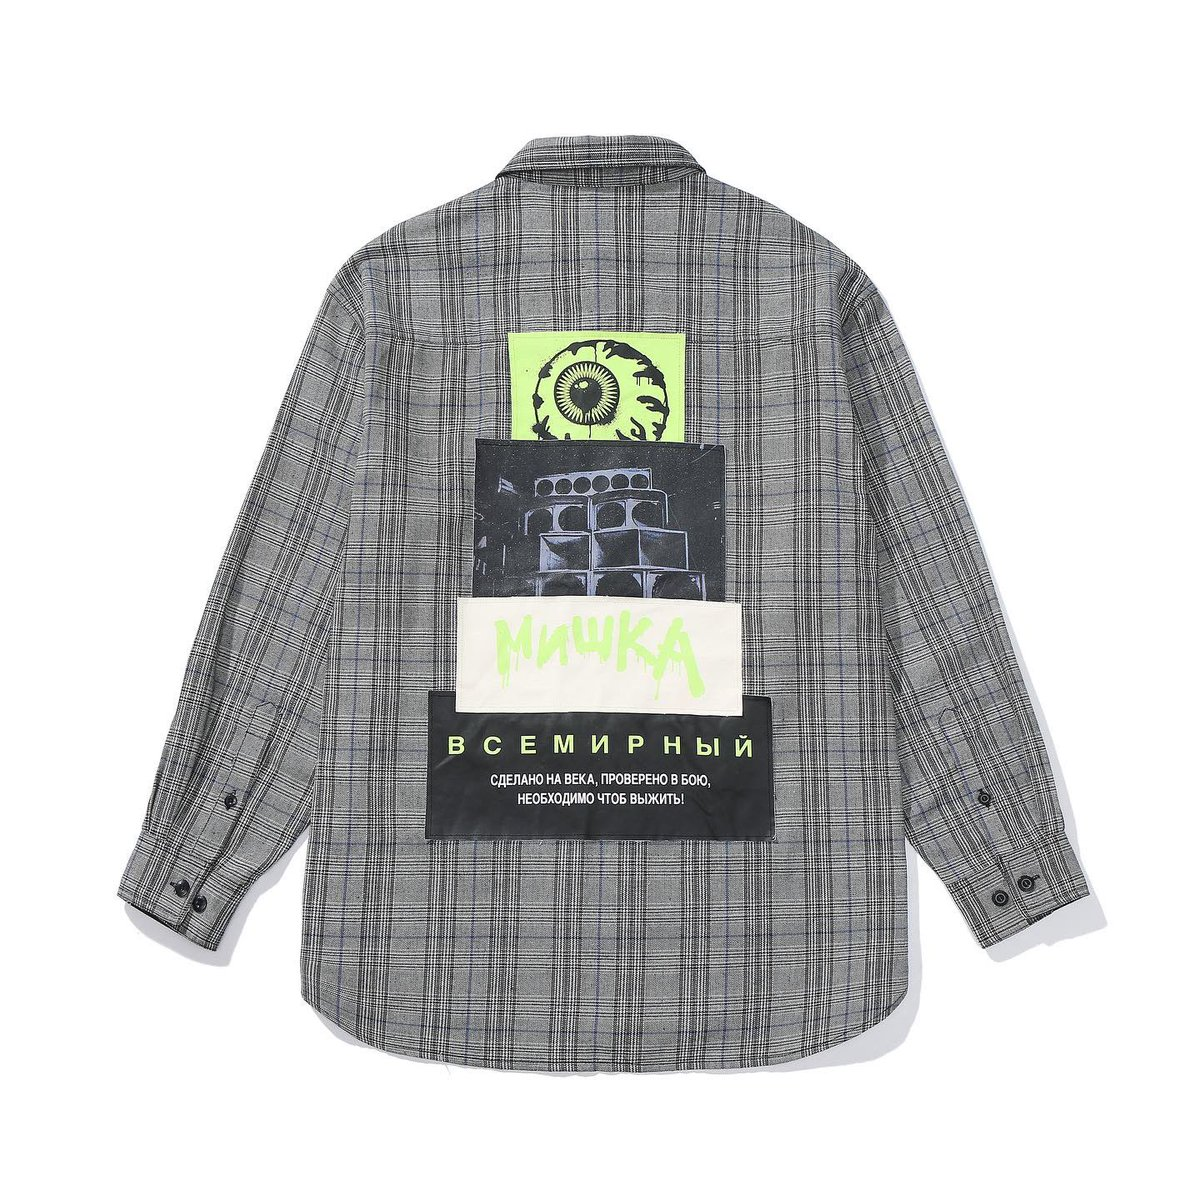 Just restocked some of the favorite pieces of the season! mishkanyc.com